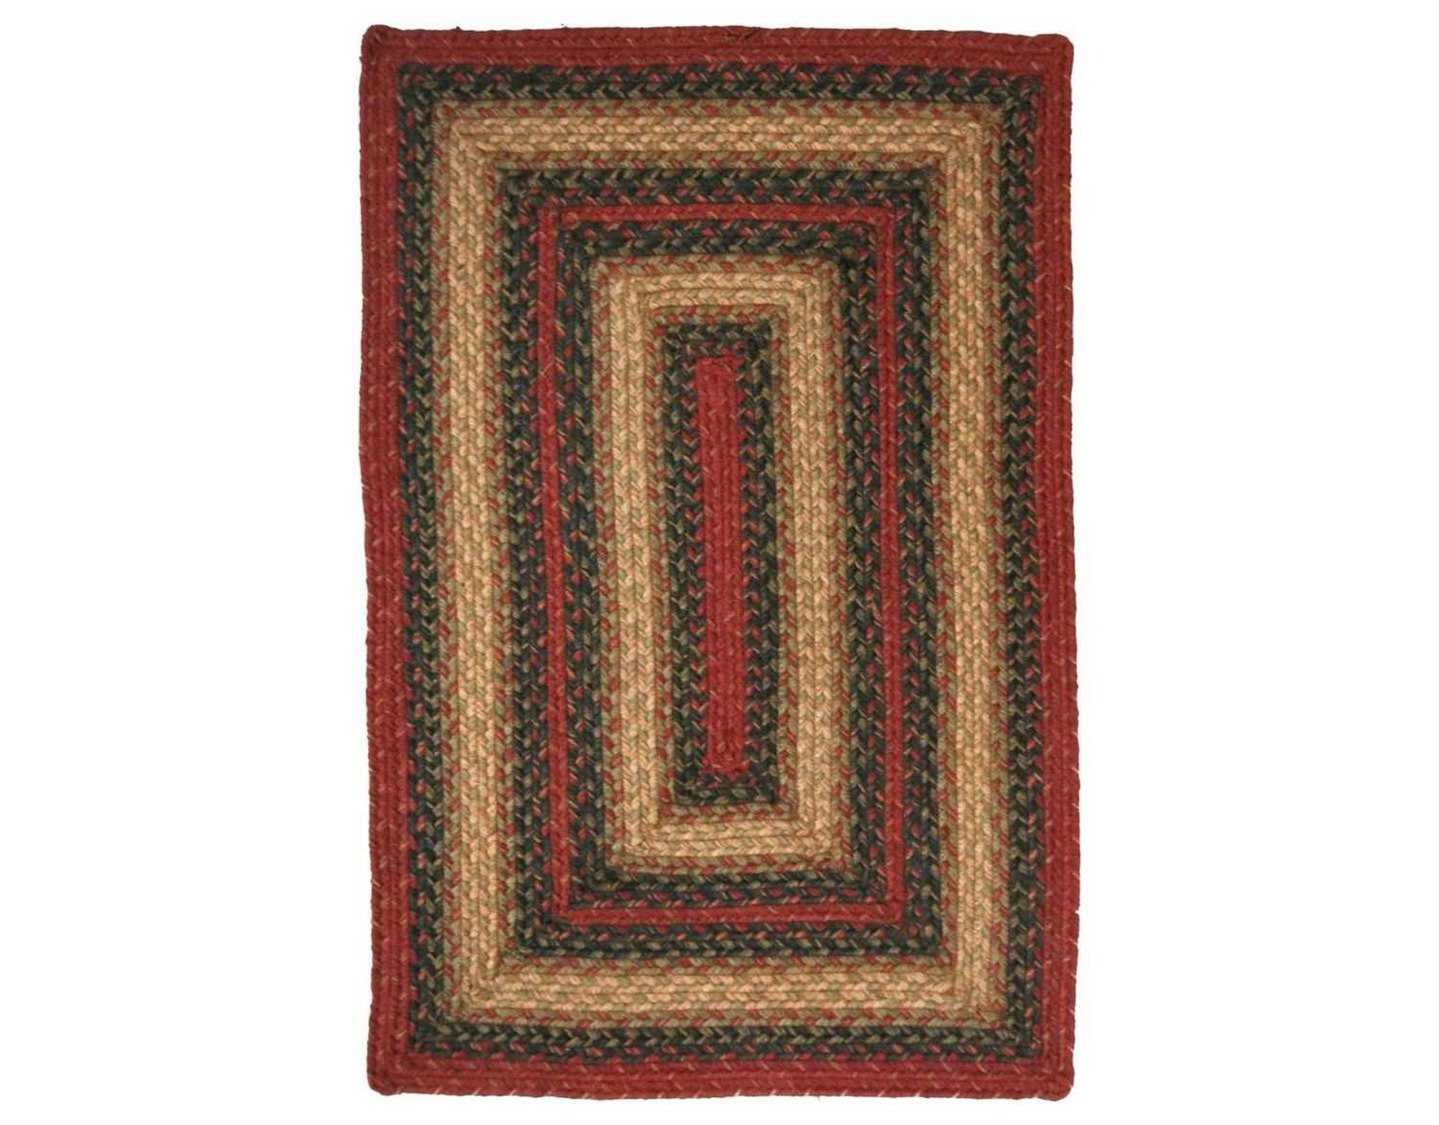 homespice decor jute braided rectangular red area rug